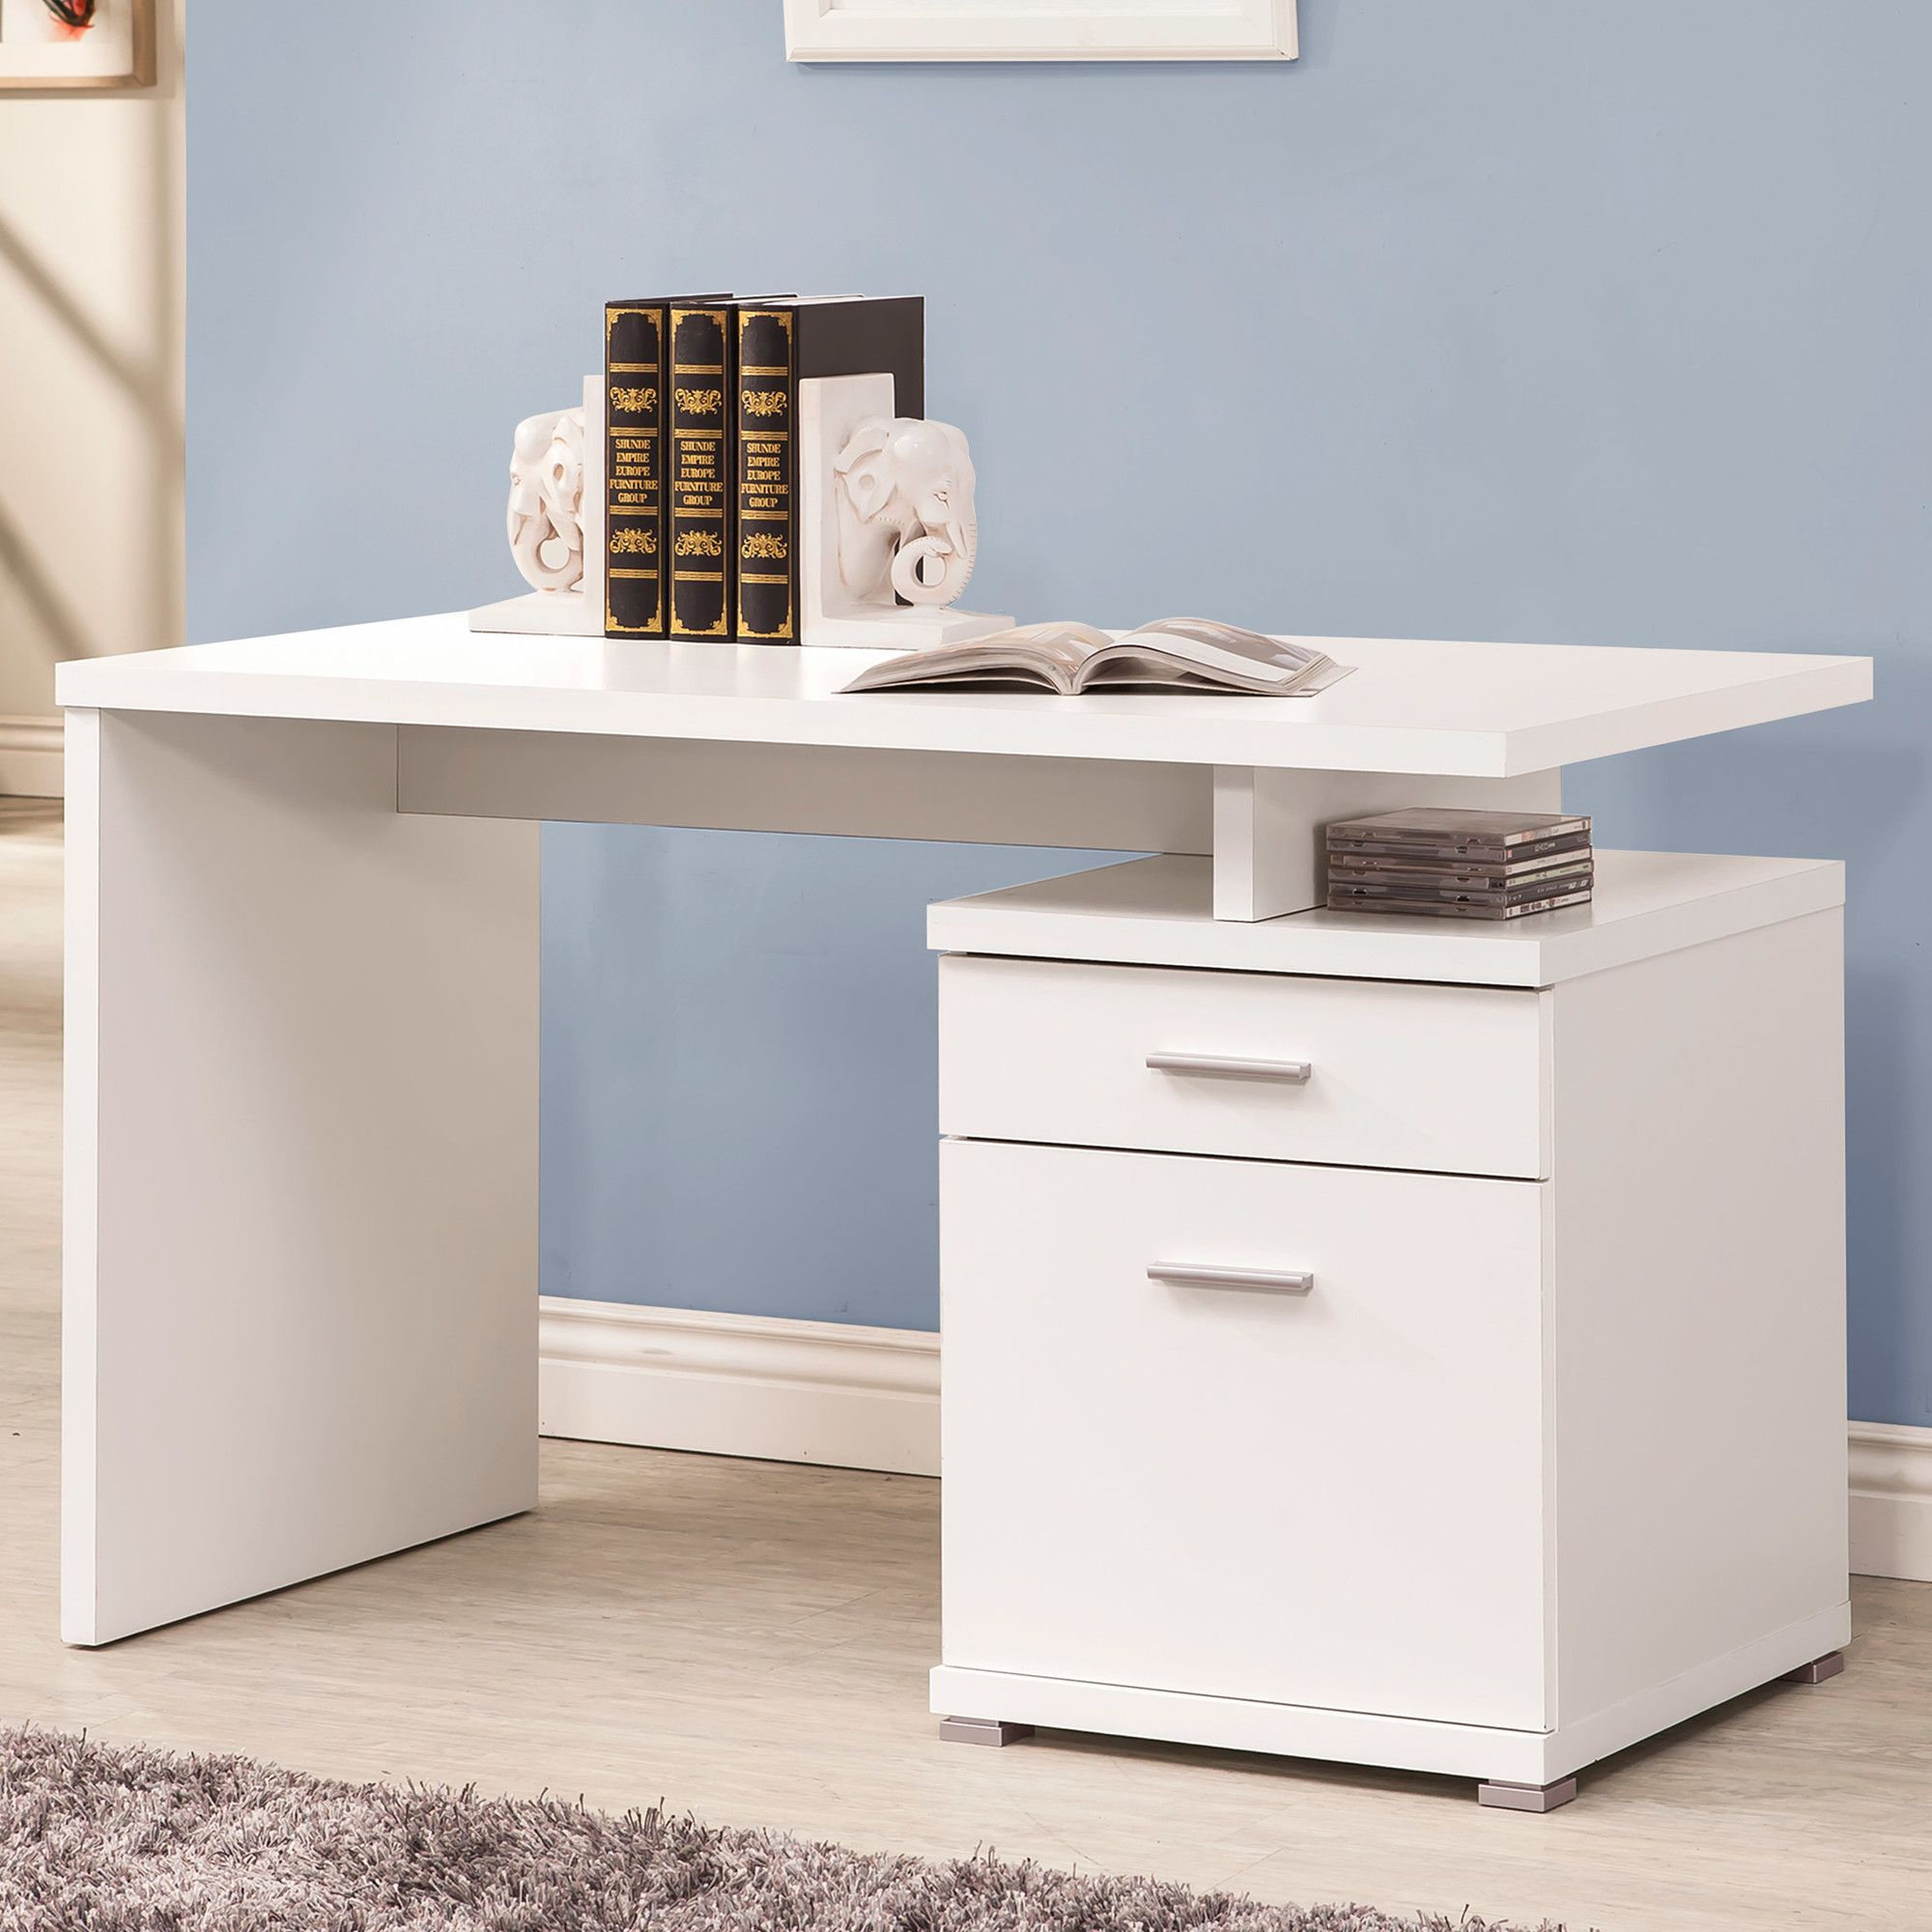 179 99 Each Wayfair Get 2 One For Sewing Machine Drawers Can Be Flipped Or Mirrored When 2 Put Together With Images Computer Desks For Home White Wooden Desk Furniture